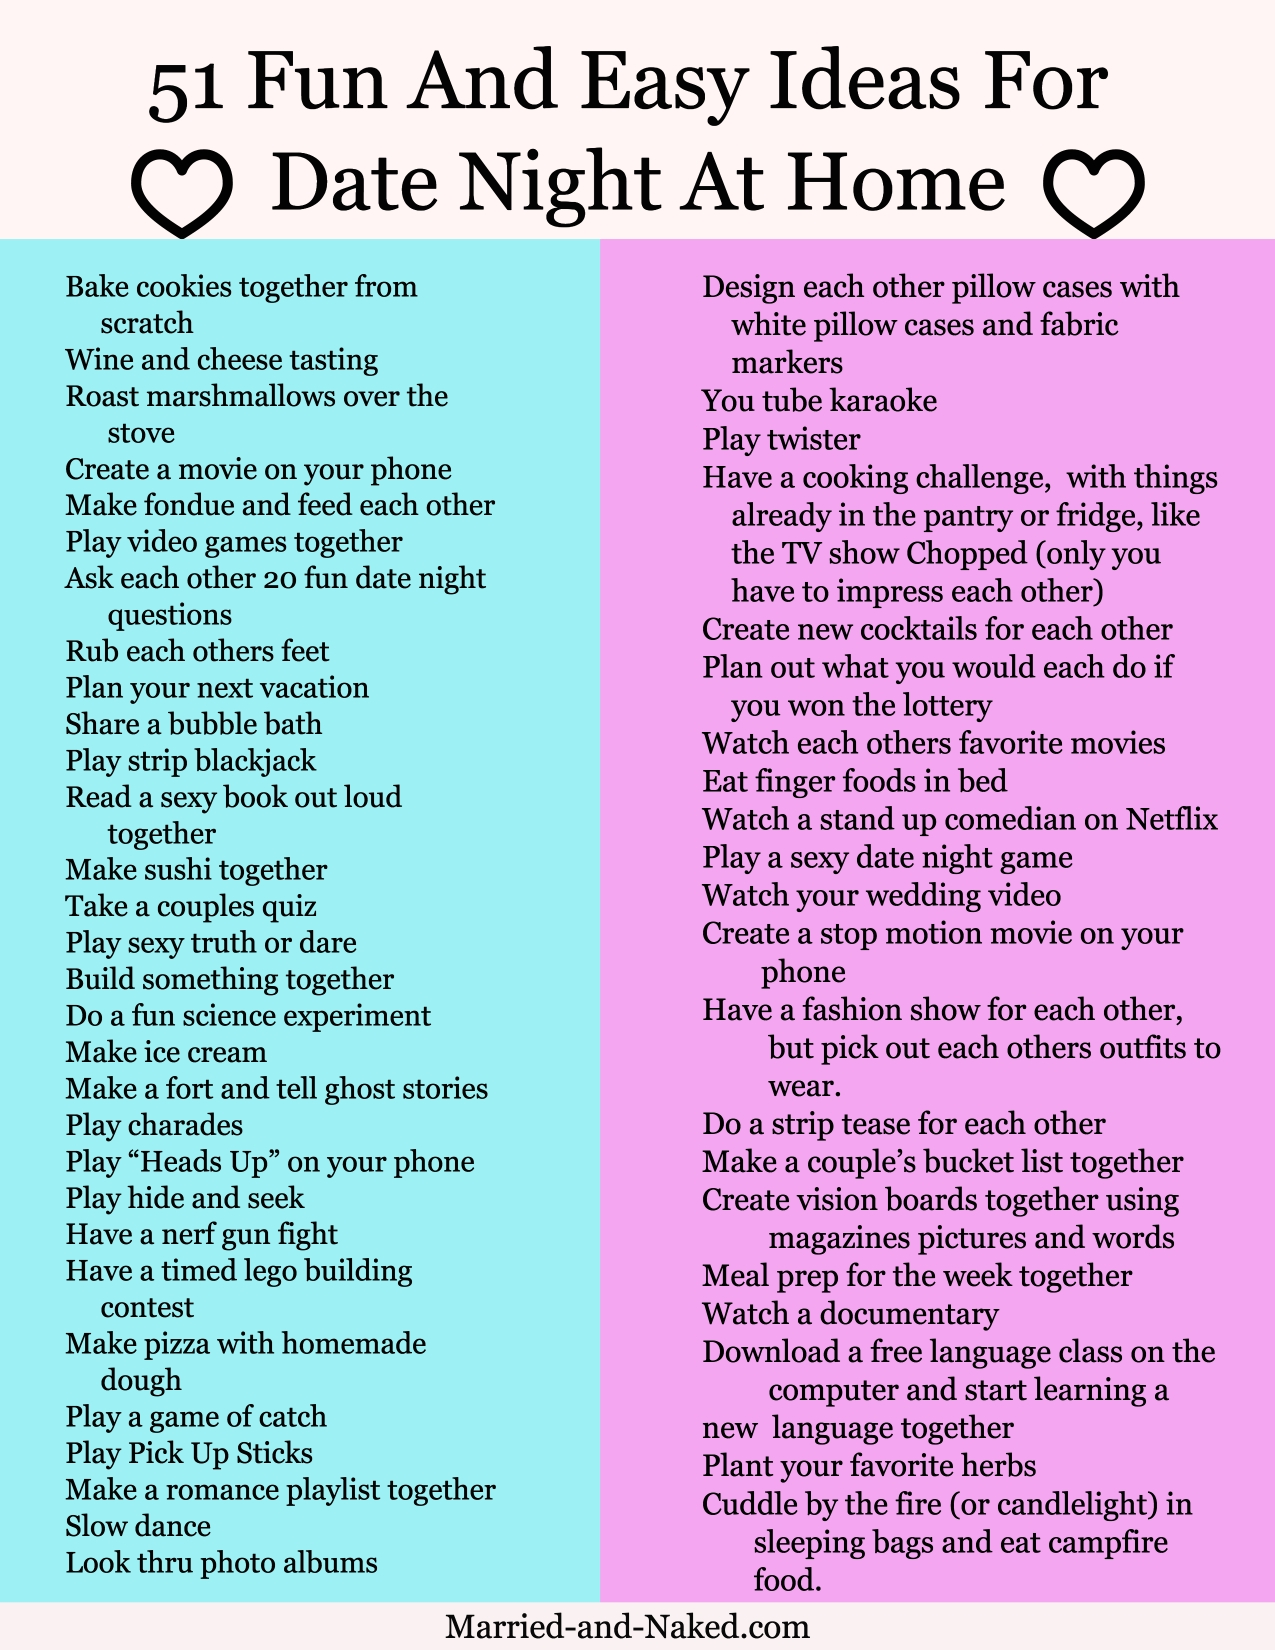 10 Stylish Date Night Ideas For Him date night questions for married couples married and naked free 5 2020